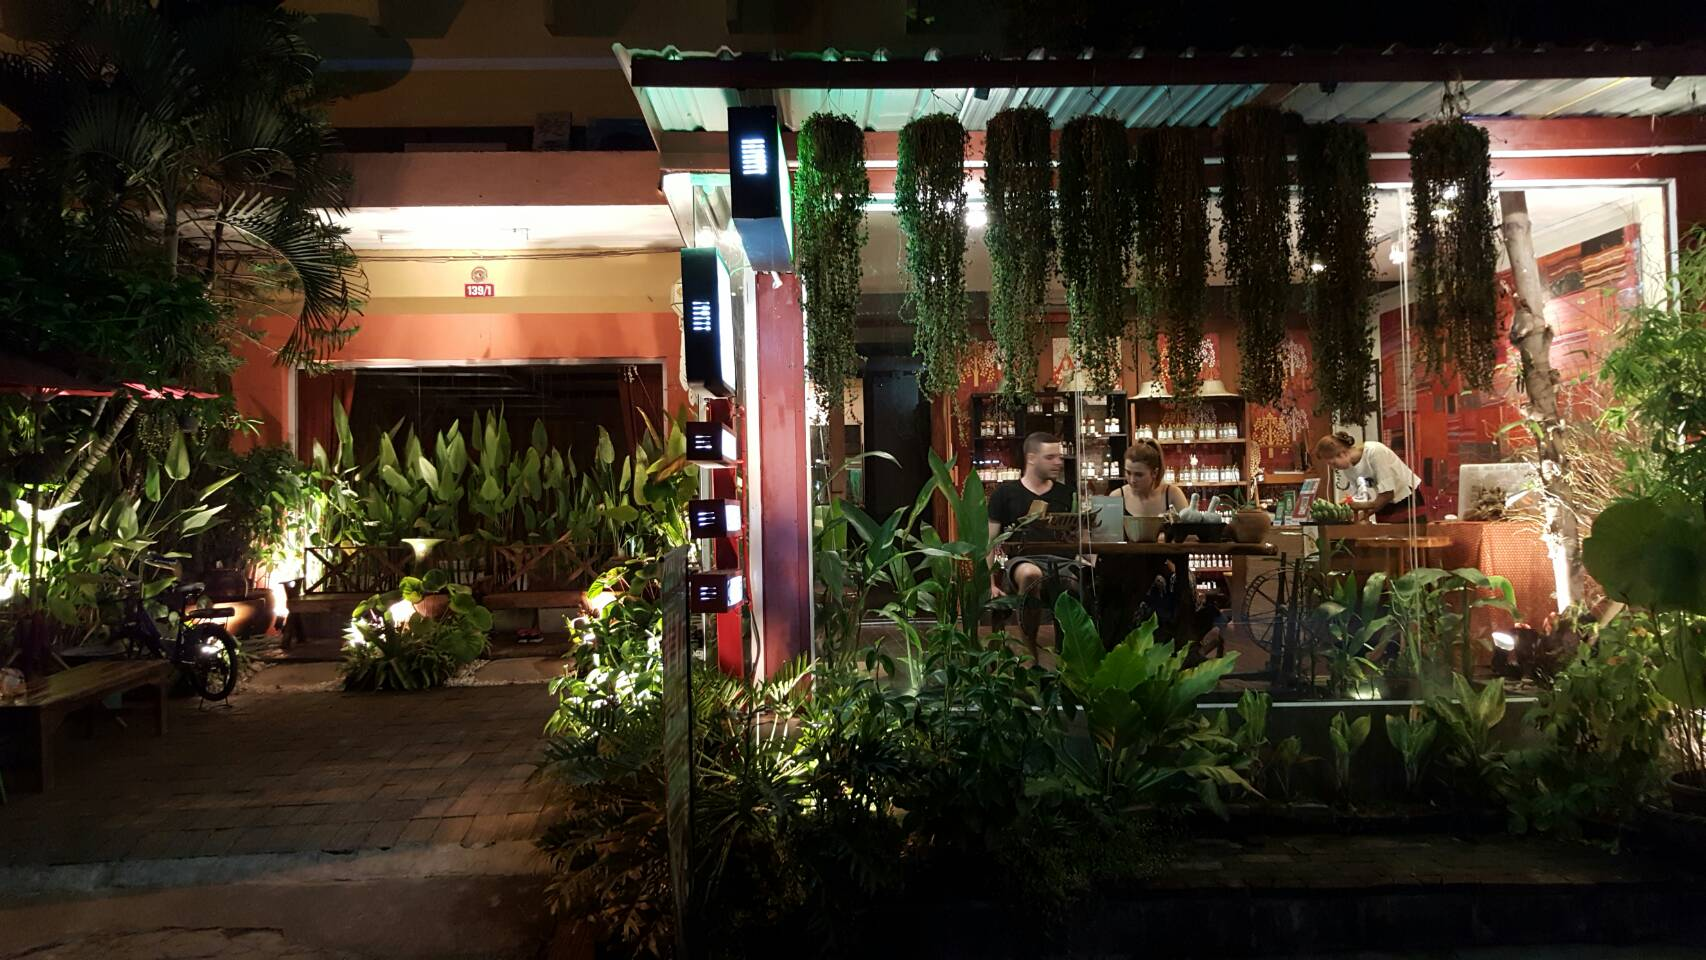 chai massage on  Loi Kroh Soi 1 Mueang Chiang Mai